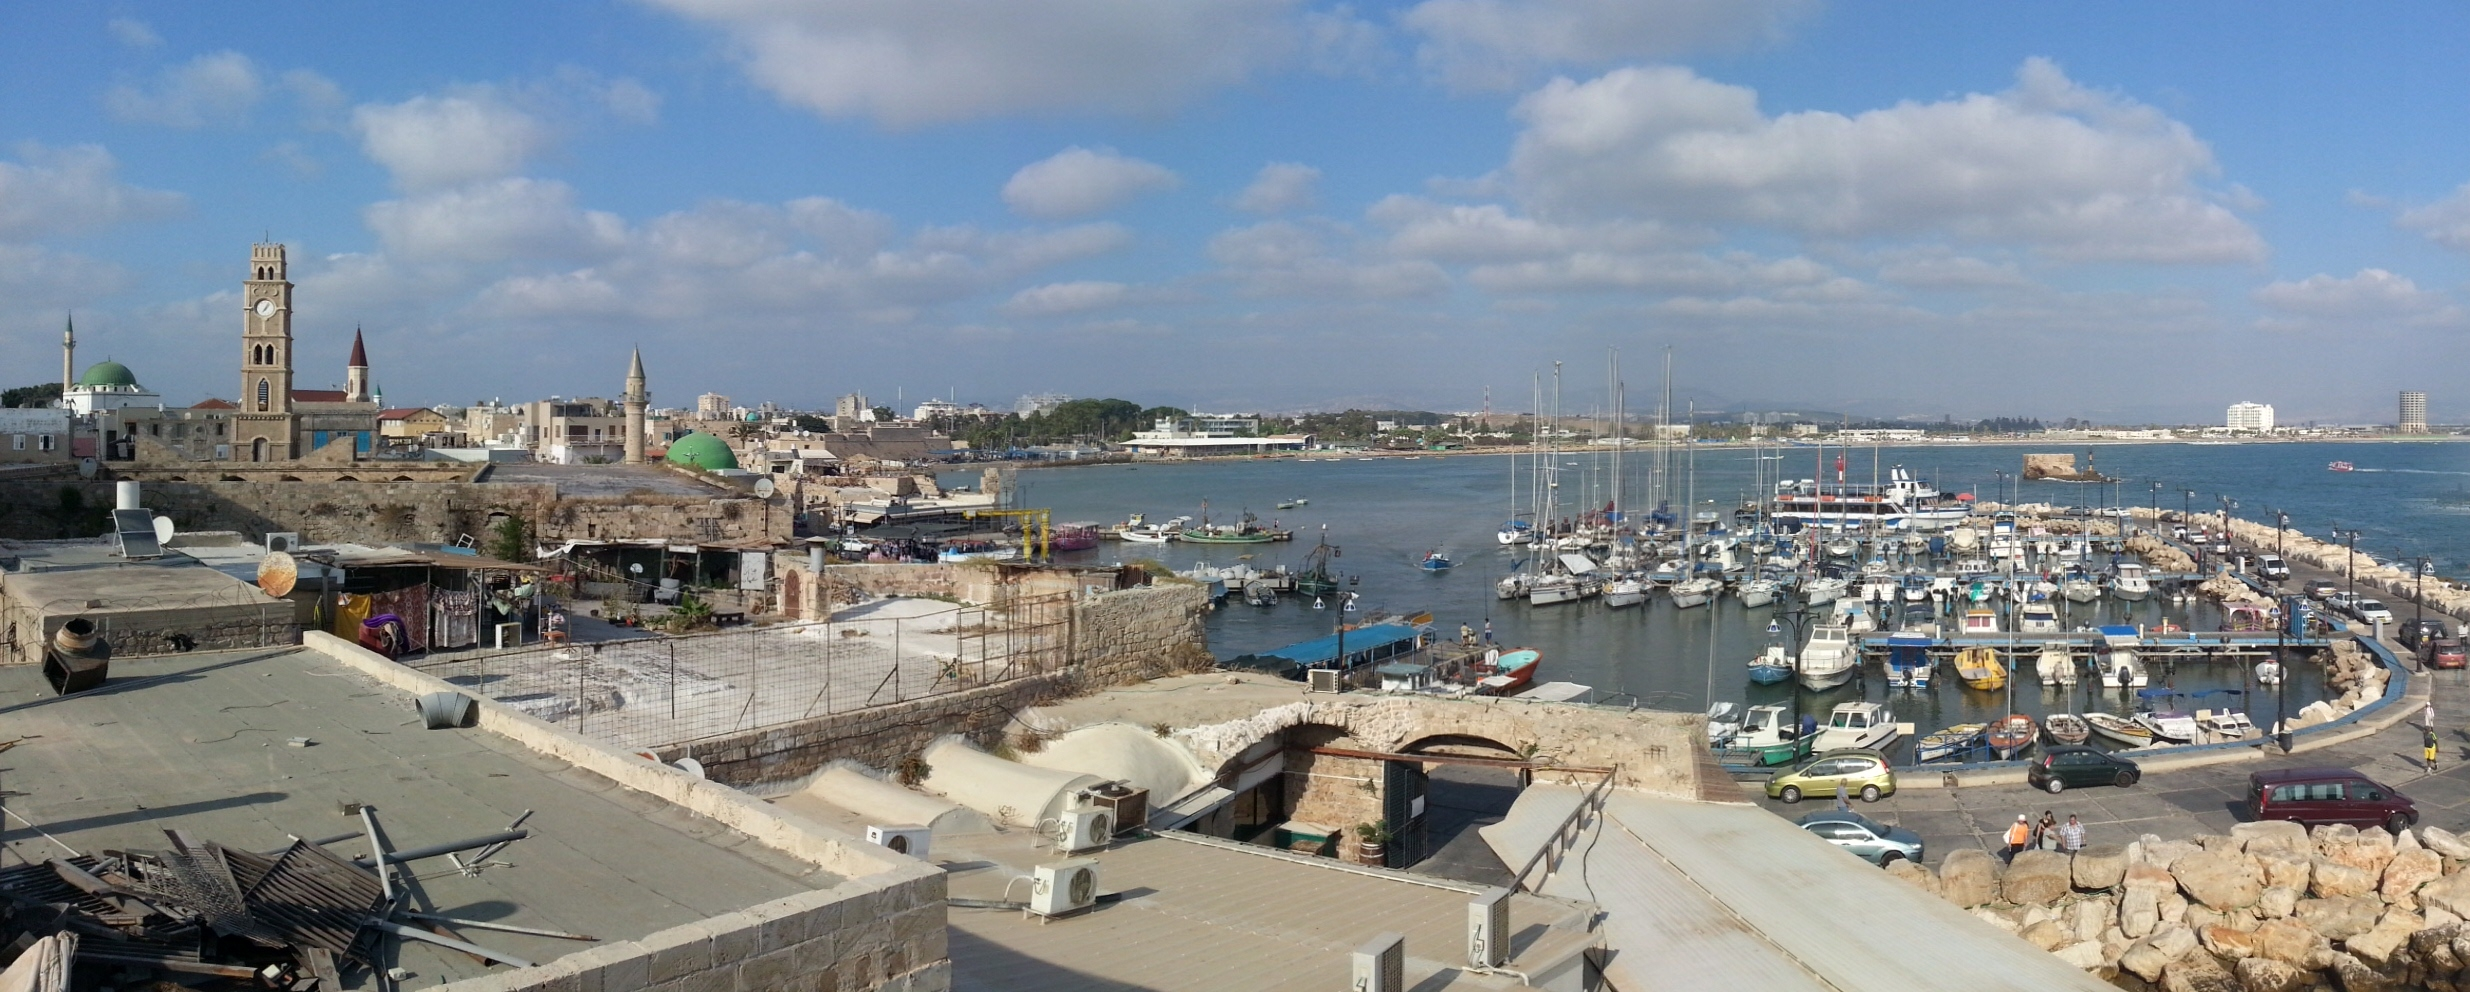 Bay of Akko from the Old City